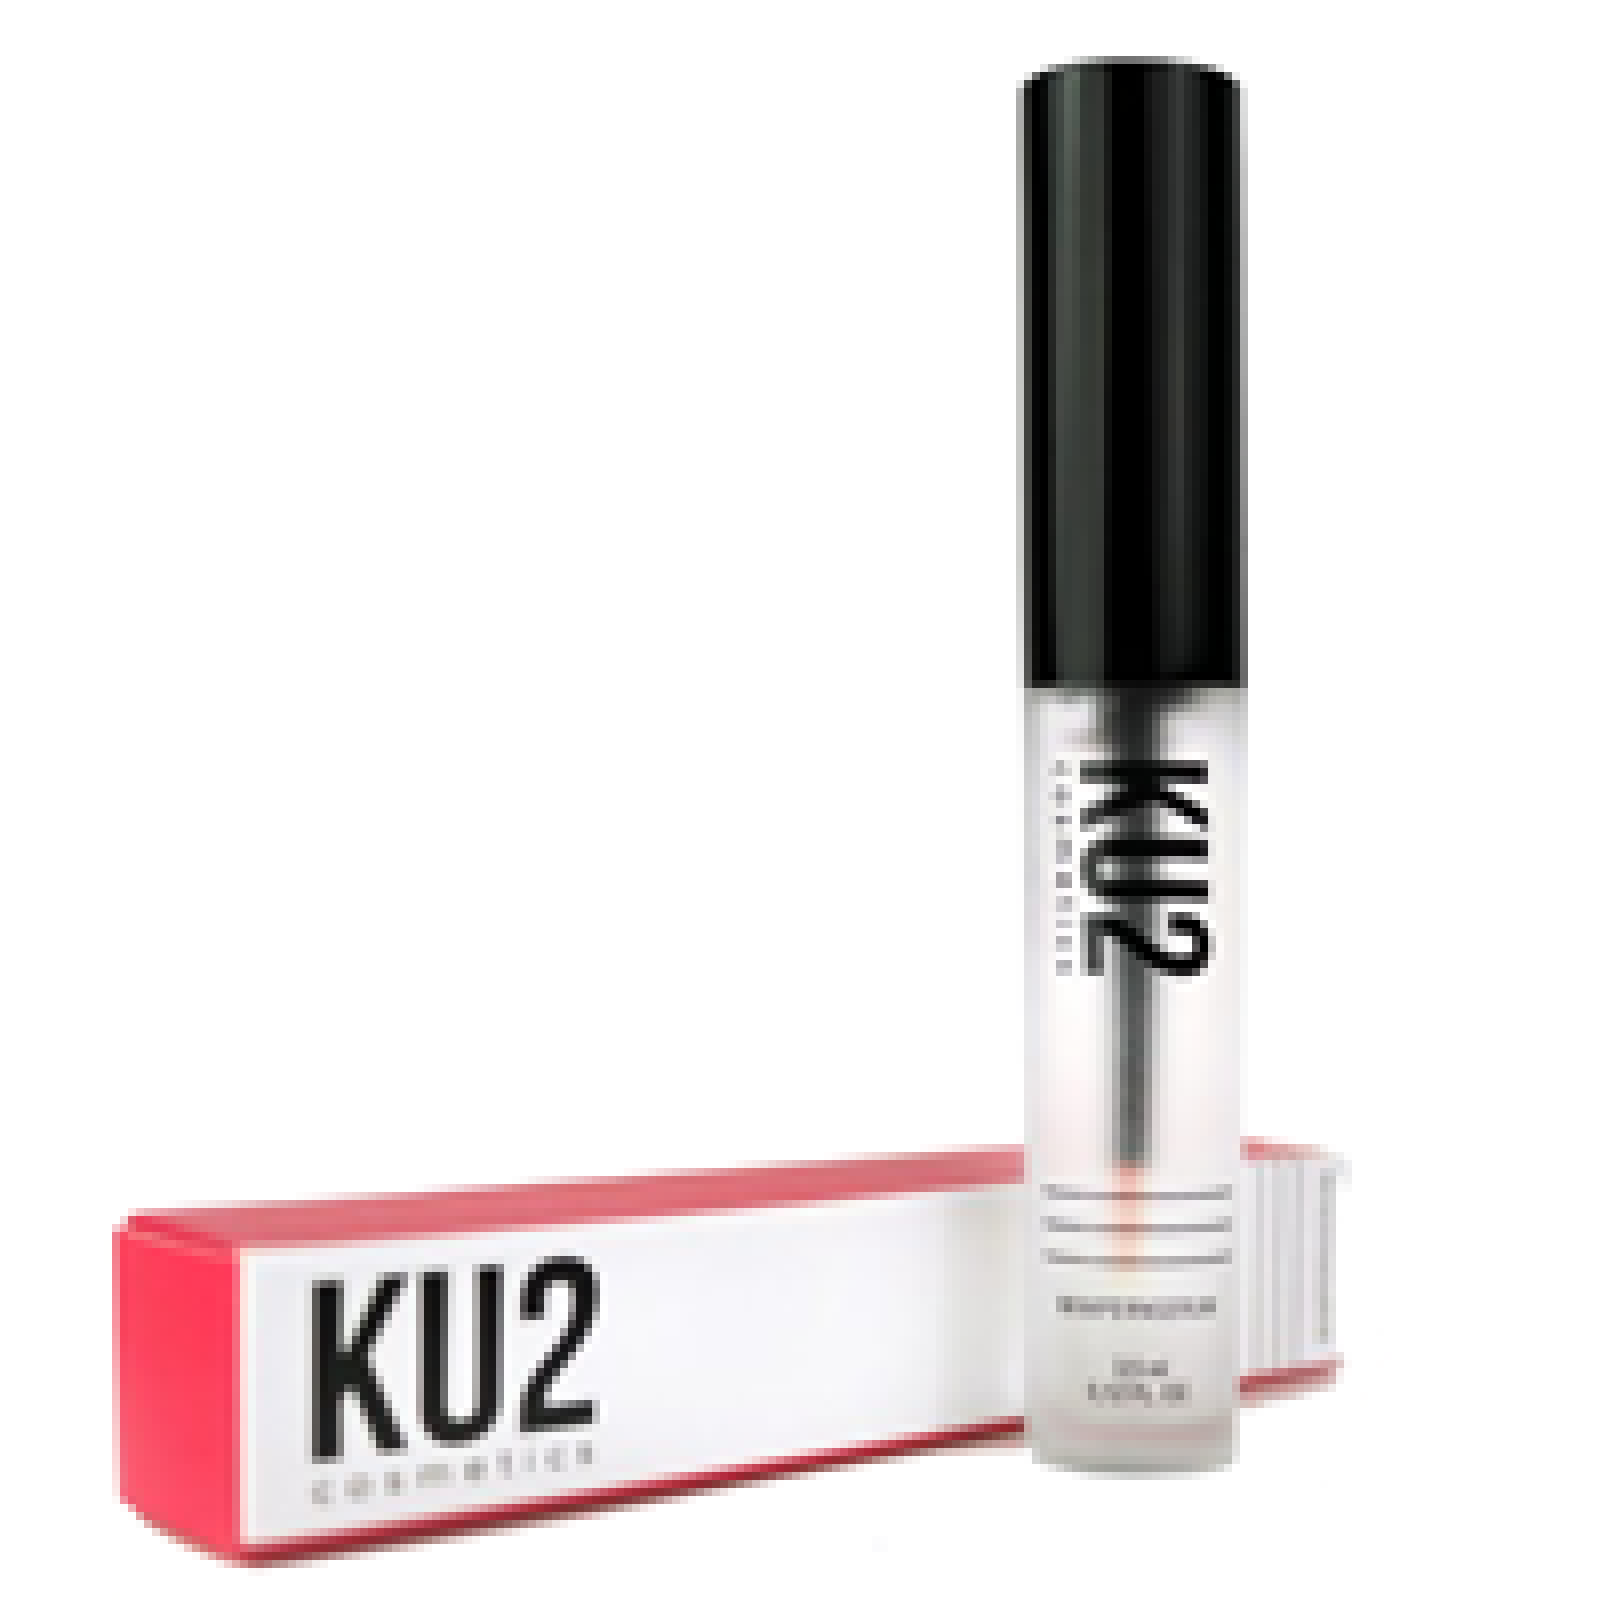 KU2 Test Wimpernserum